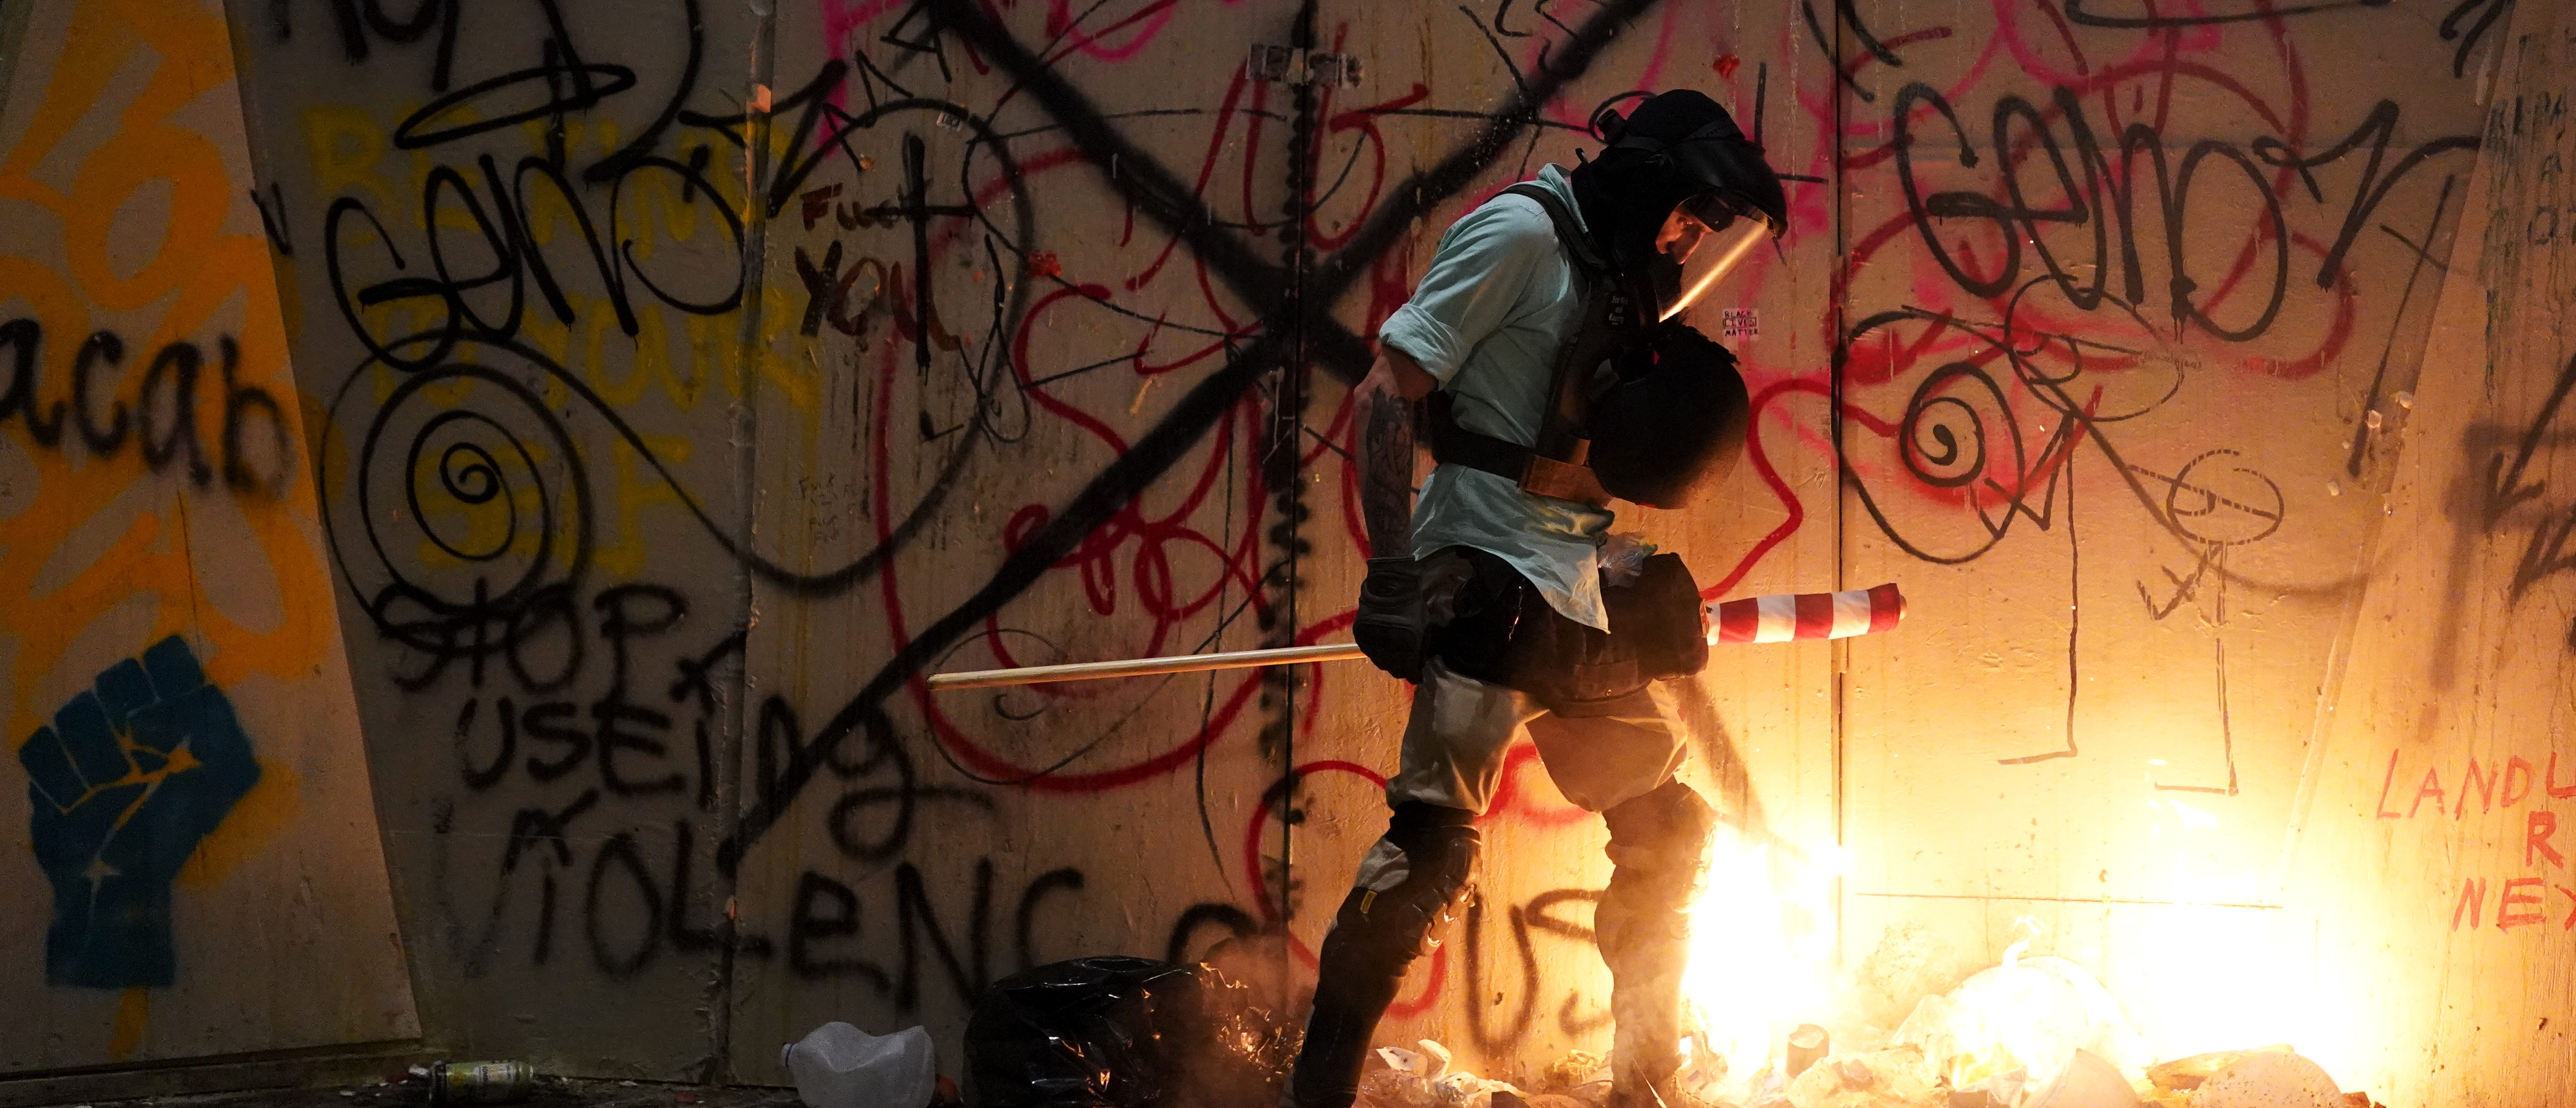 A protester attempts to stomp out a small fire during a protest at the Mark O. Hatfield U.S. Courthouse on July 21, 2020 in Portland, Oregon. Tuesday night marked 55 days of protests in Portland following the death of George Floyd in police custody. (Photo by Nathan Howard/Getty Images)